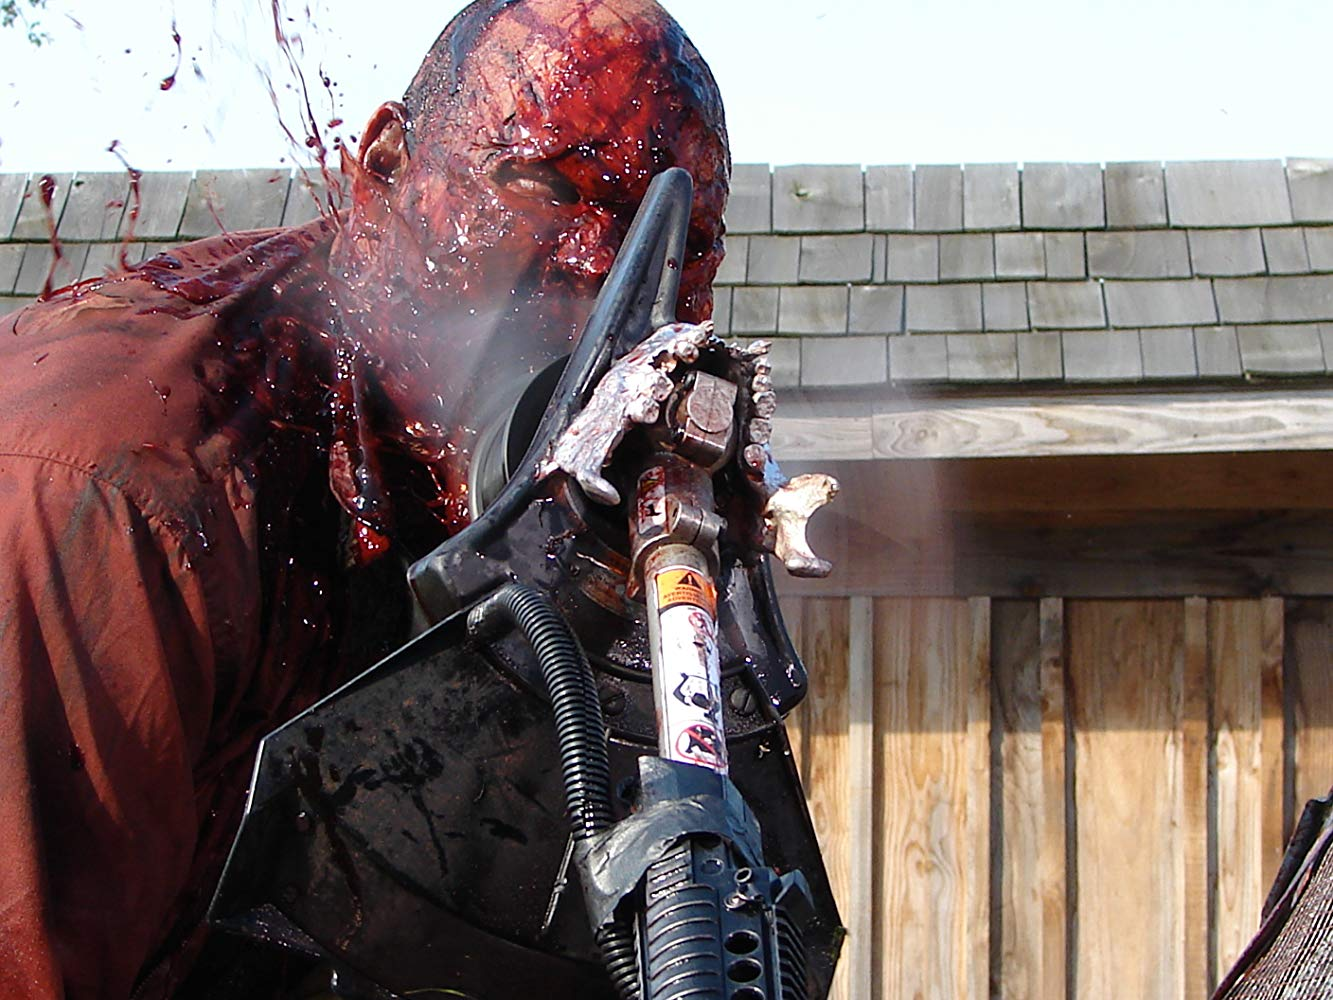 Zombie gore in Bong of the Dead (2011)